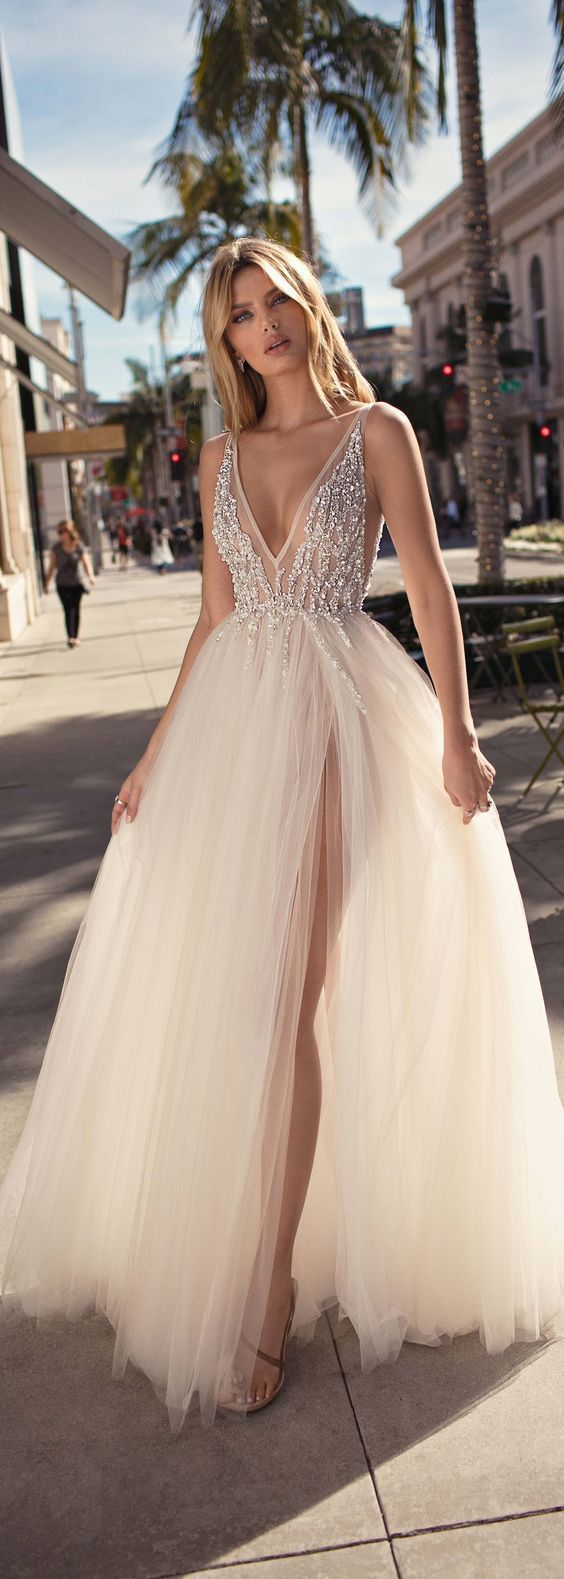 white party dress tulle Long Evening Prom Dresses, a deep v neck formal dress